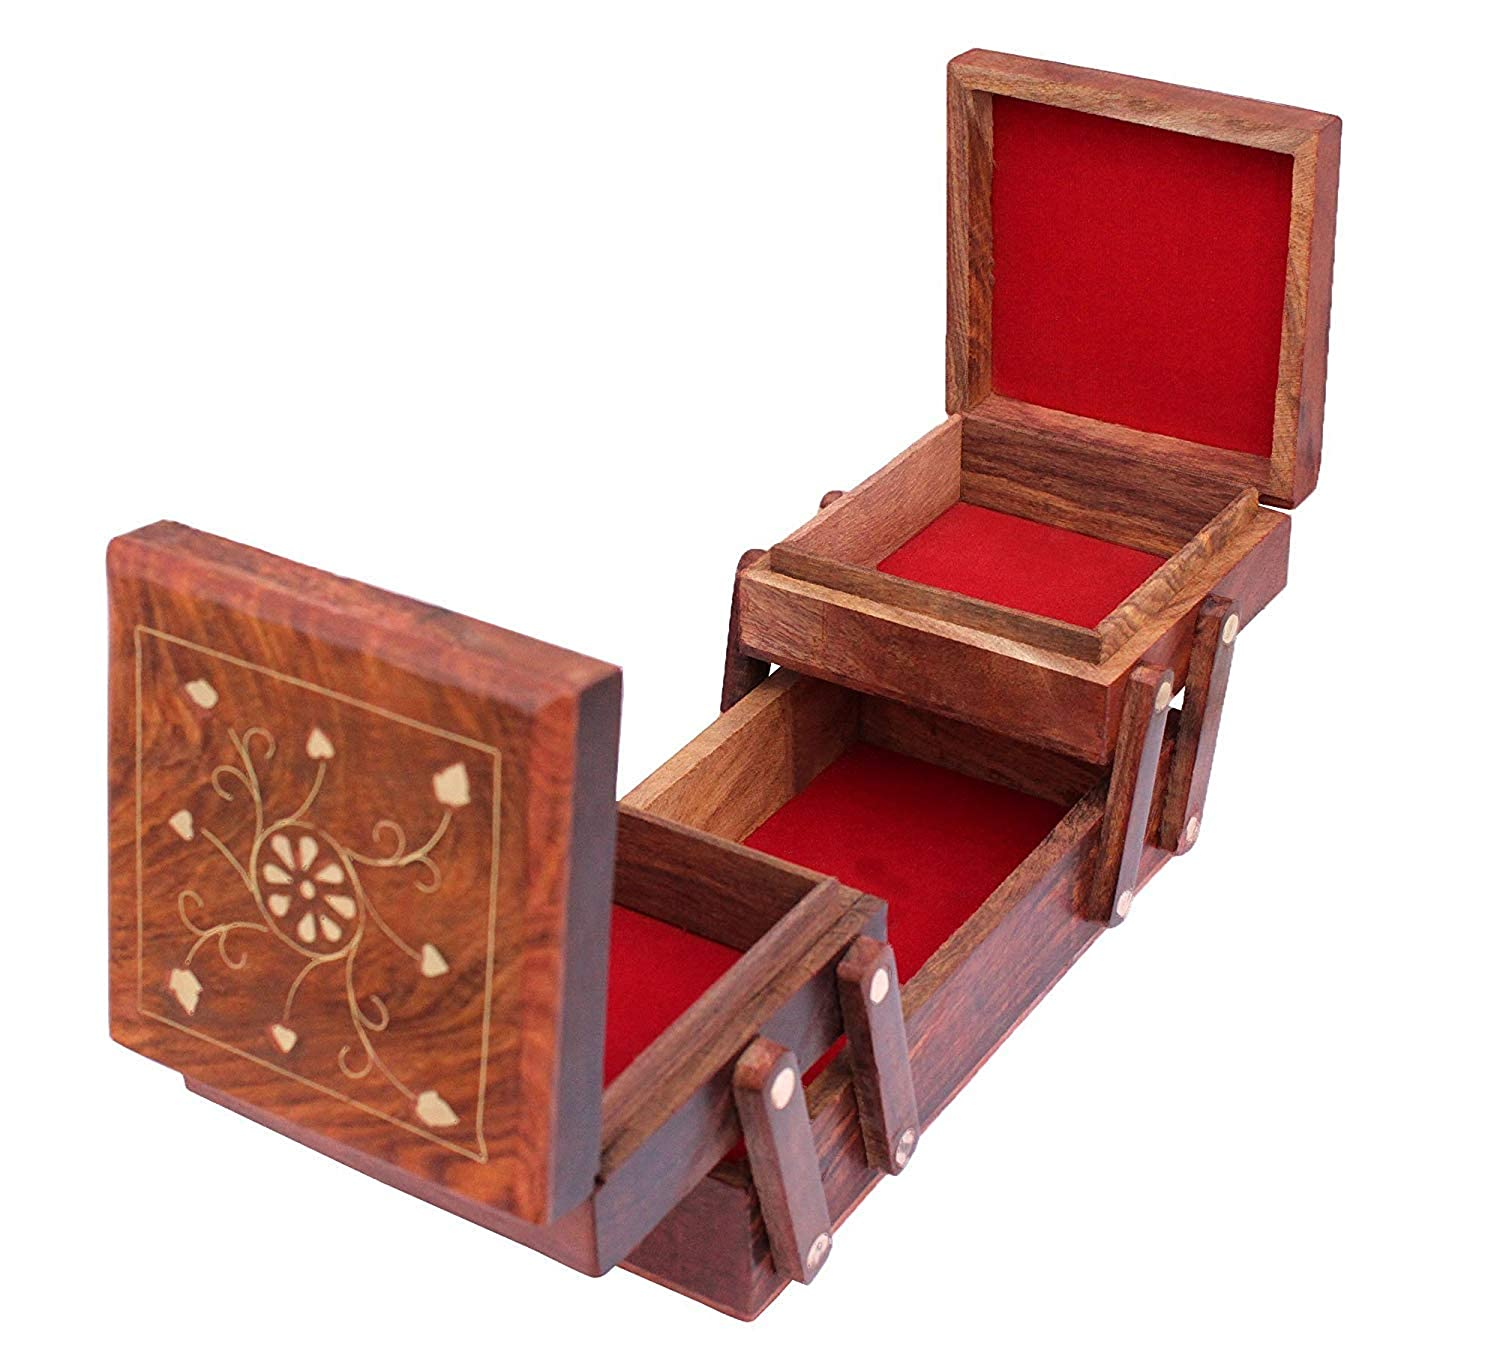 Sheesham Wood Wooden Jewellery Box for Women  Jewel Organizer Box Hand Carved Carvings, (8 inches) Gift Items